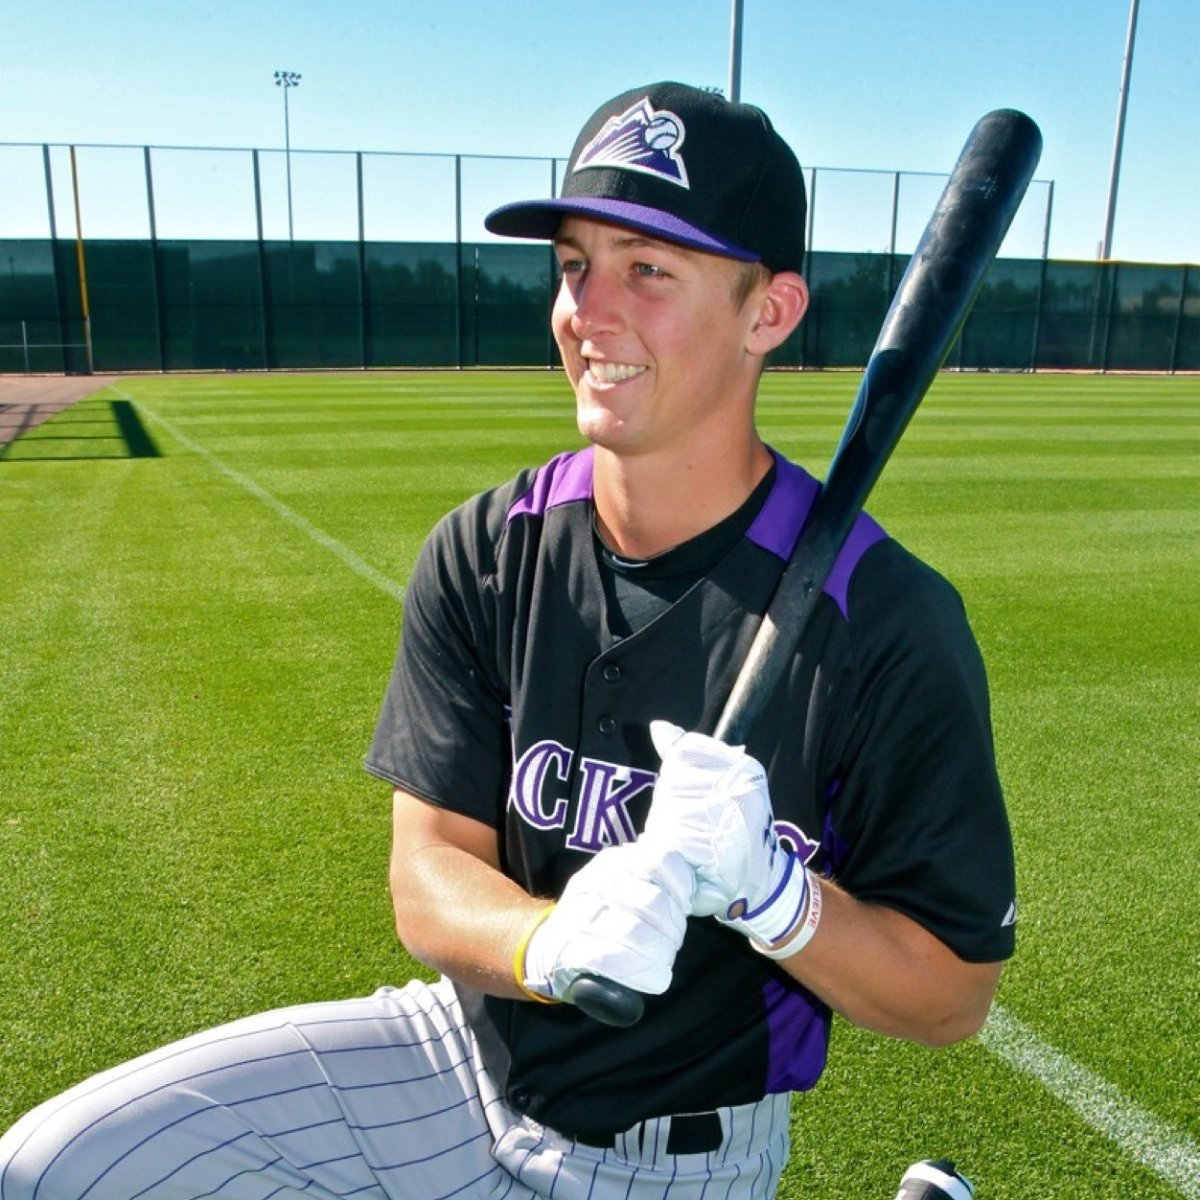 Is Colorado Rockies Prospect Ryan McMahon the Real Deal?